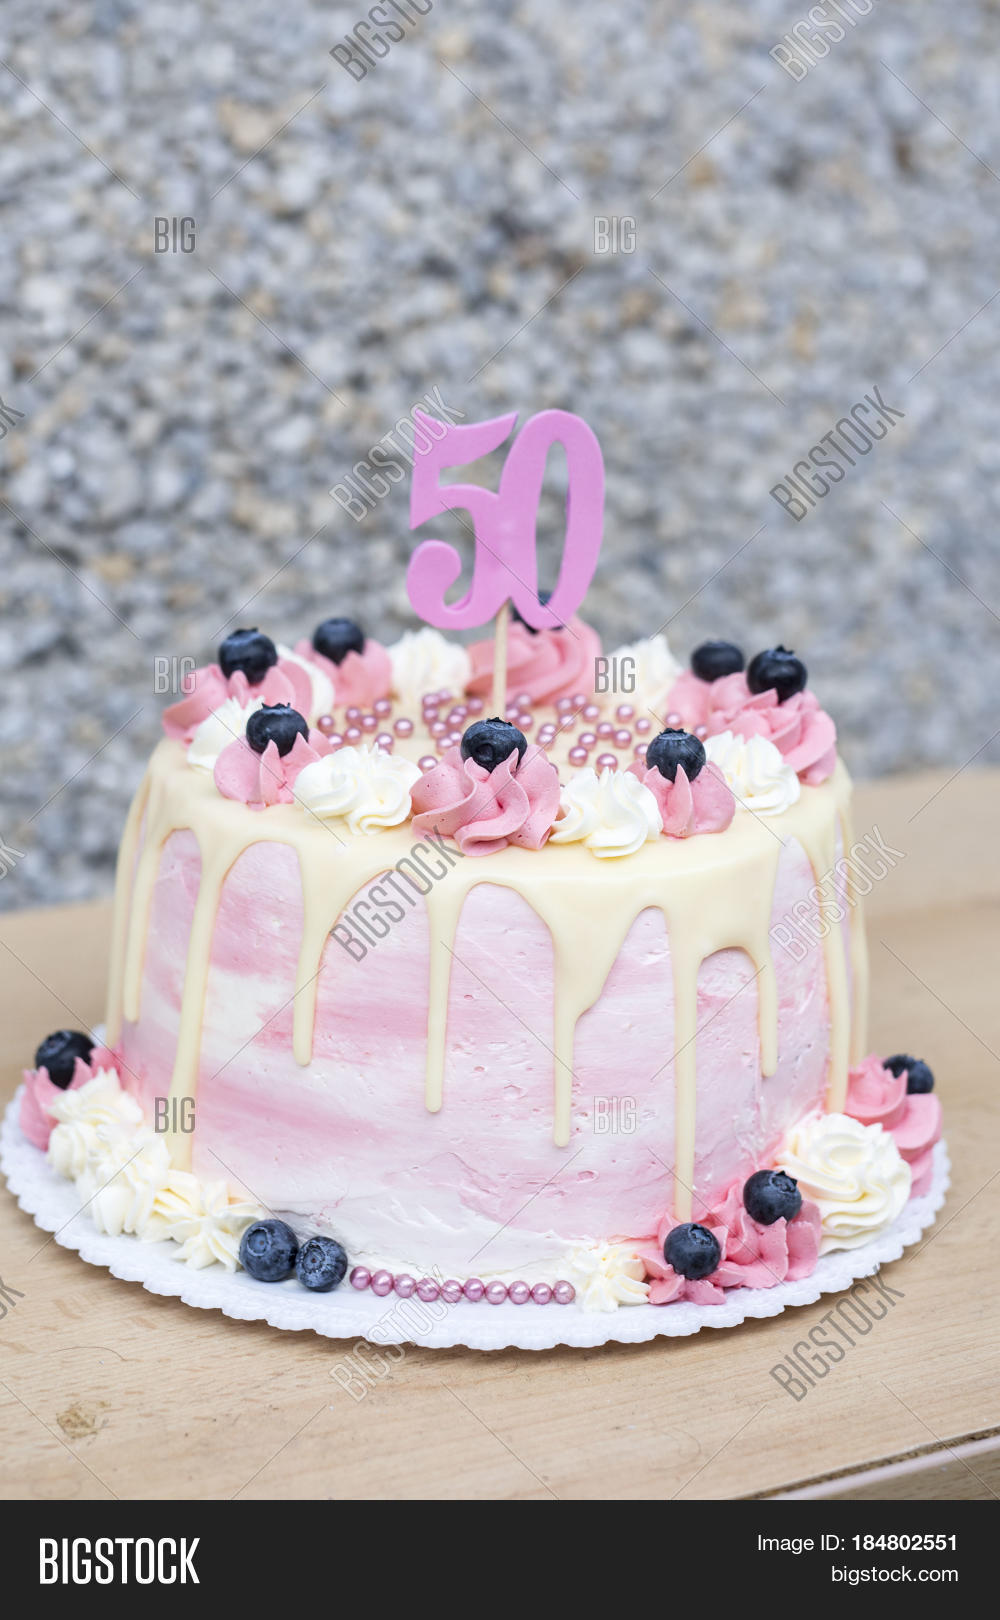 Homemade Birthday Cake For 50 Year Old Woman